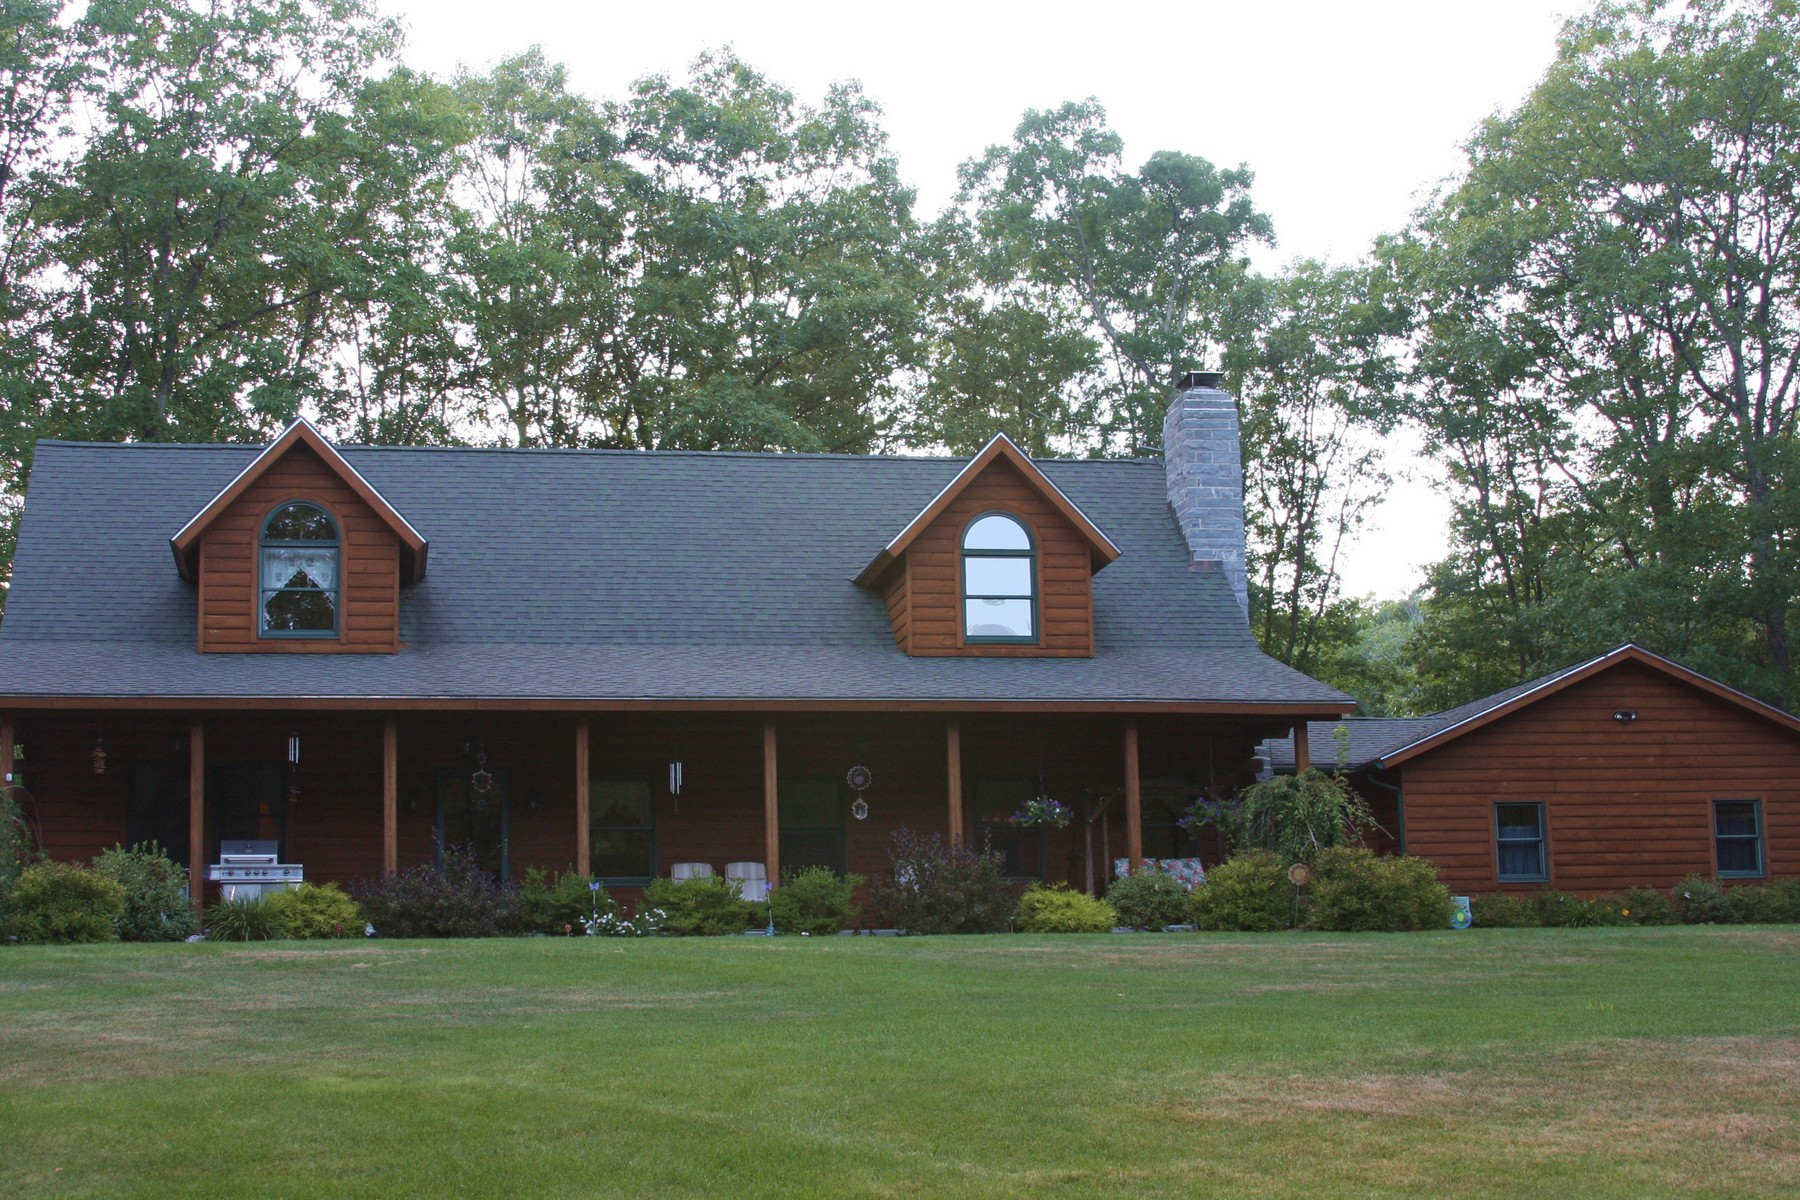 Maison unifamiliale pour l Vente à Outdoorsman's Paradise - Beautiful Log Cabin 2692 Greenwich Road Hardwick, Massachusetts 01037 États-Unis